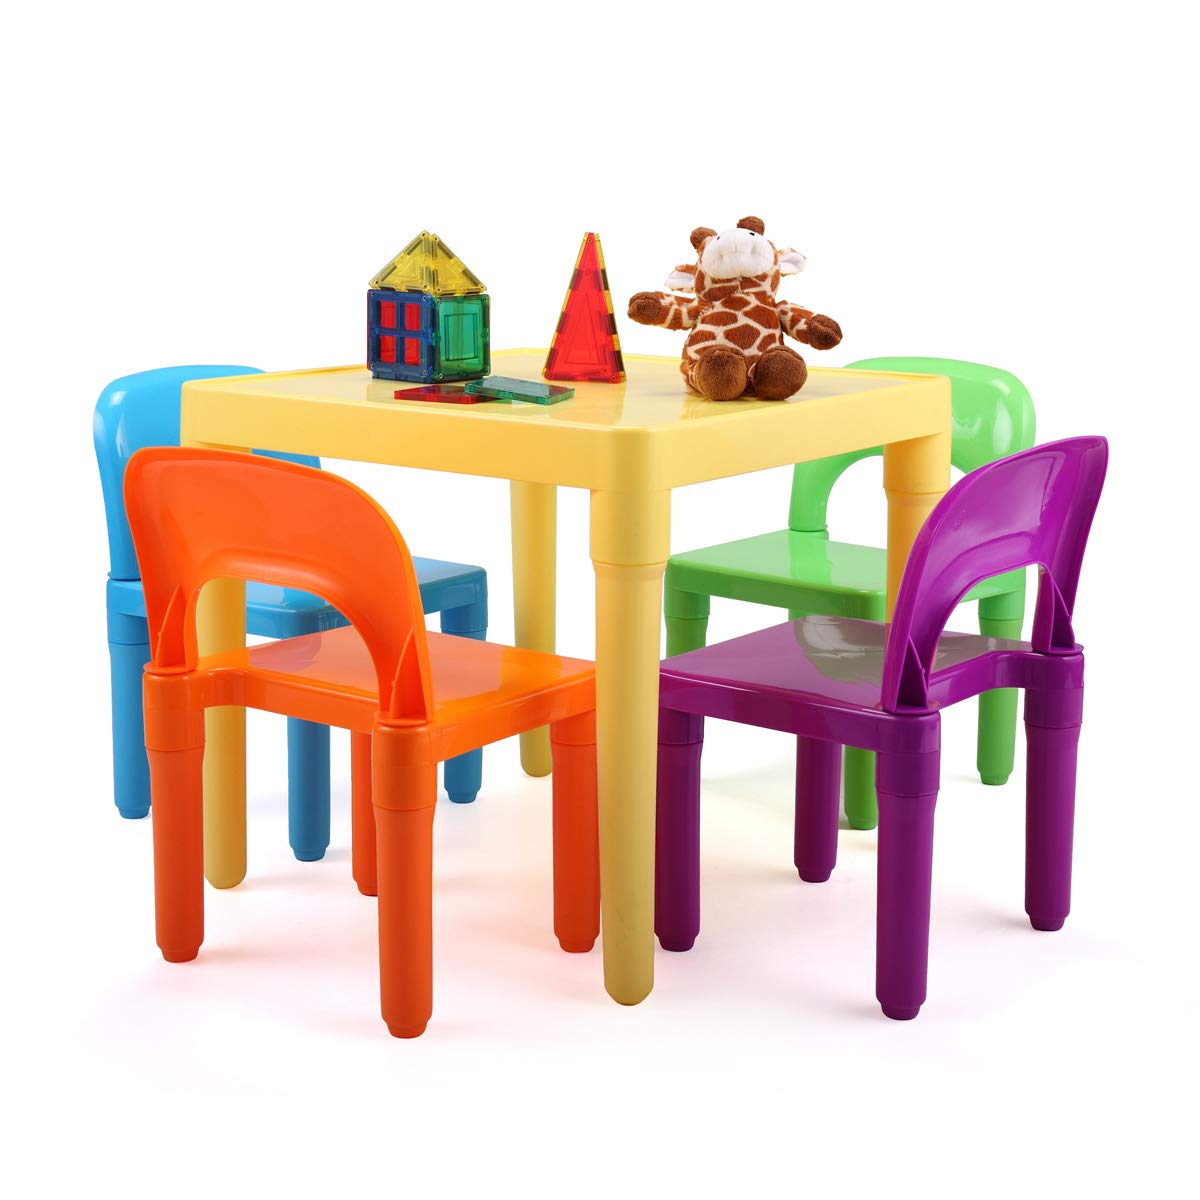 Kids Plastic Table and Chair Set Learn and Play Activity School Home Furniture for Toddler Children Aged 30-96 Months by JAXPETY